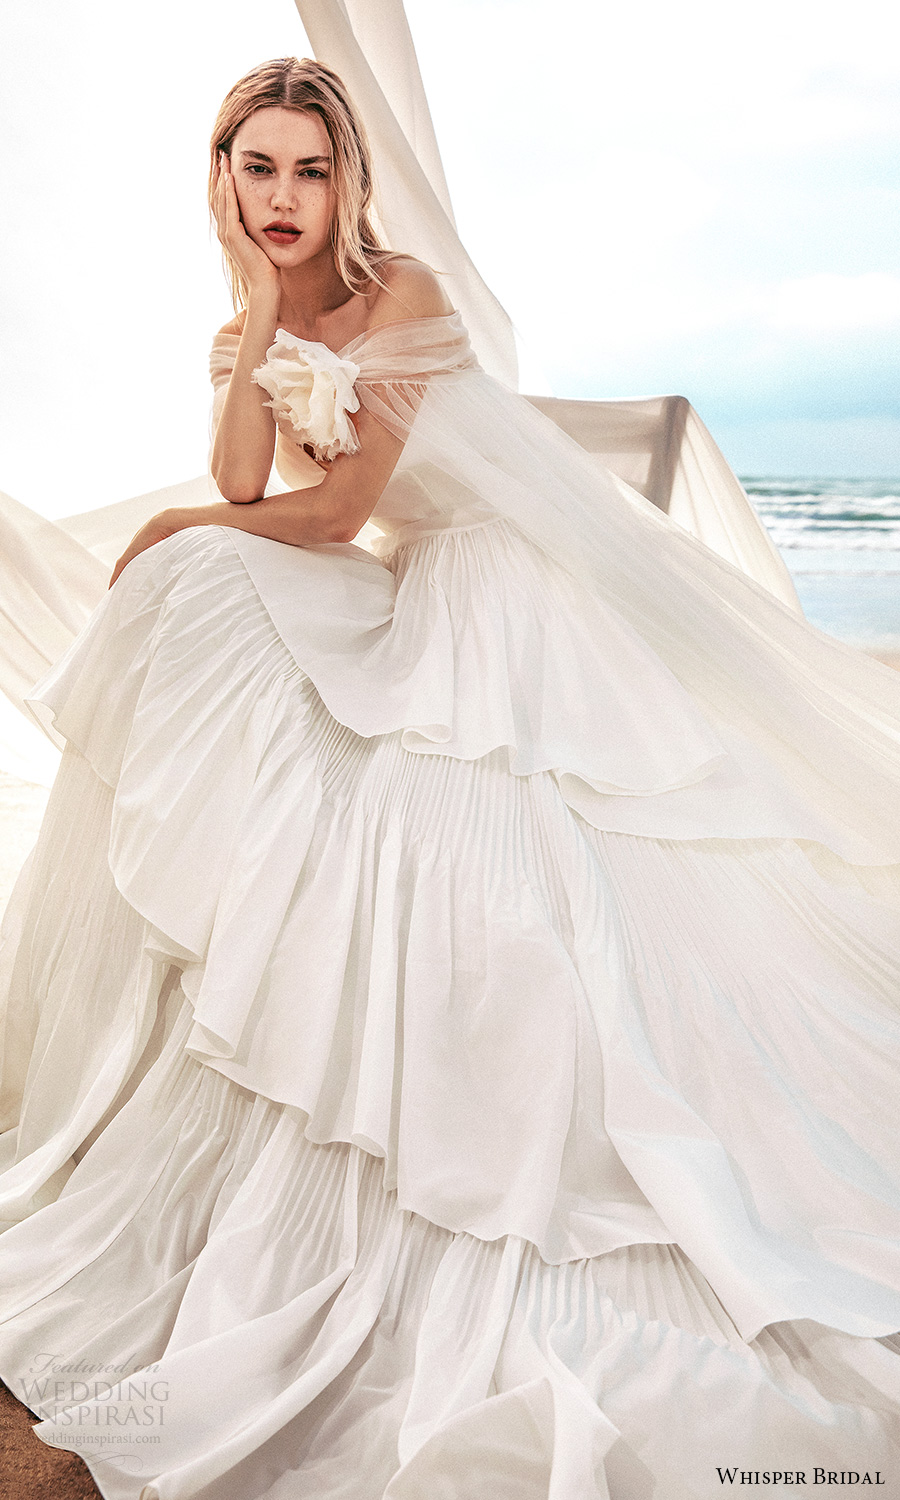 whisper bridal spring 2021 bridal strapless sweetheart neckline clean bodice a line ball gown wedding dress tiered skirt chapel train sheer shrug (9) sv